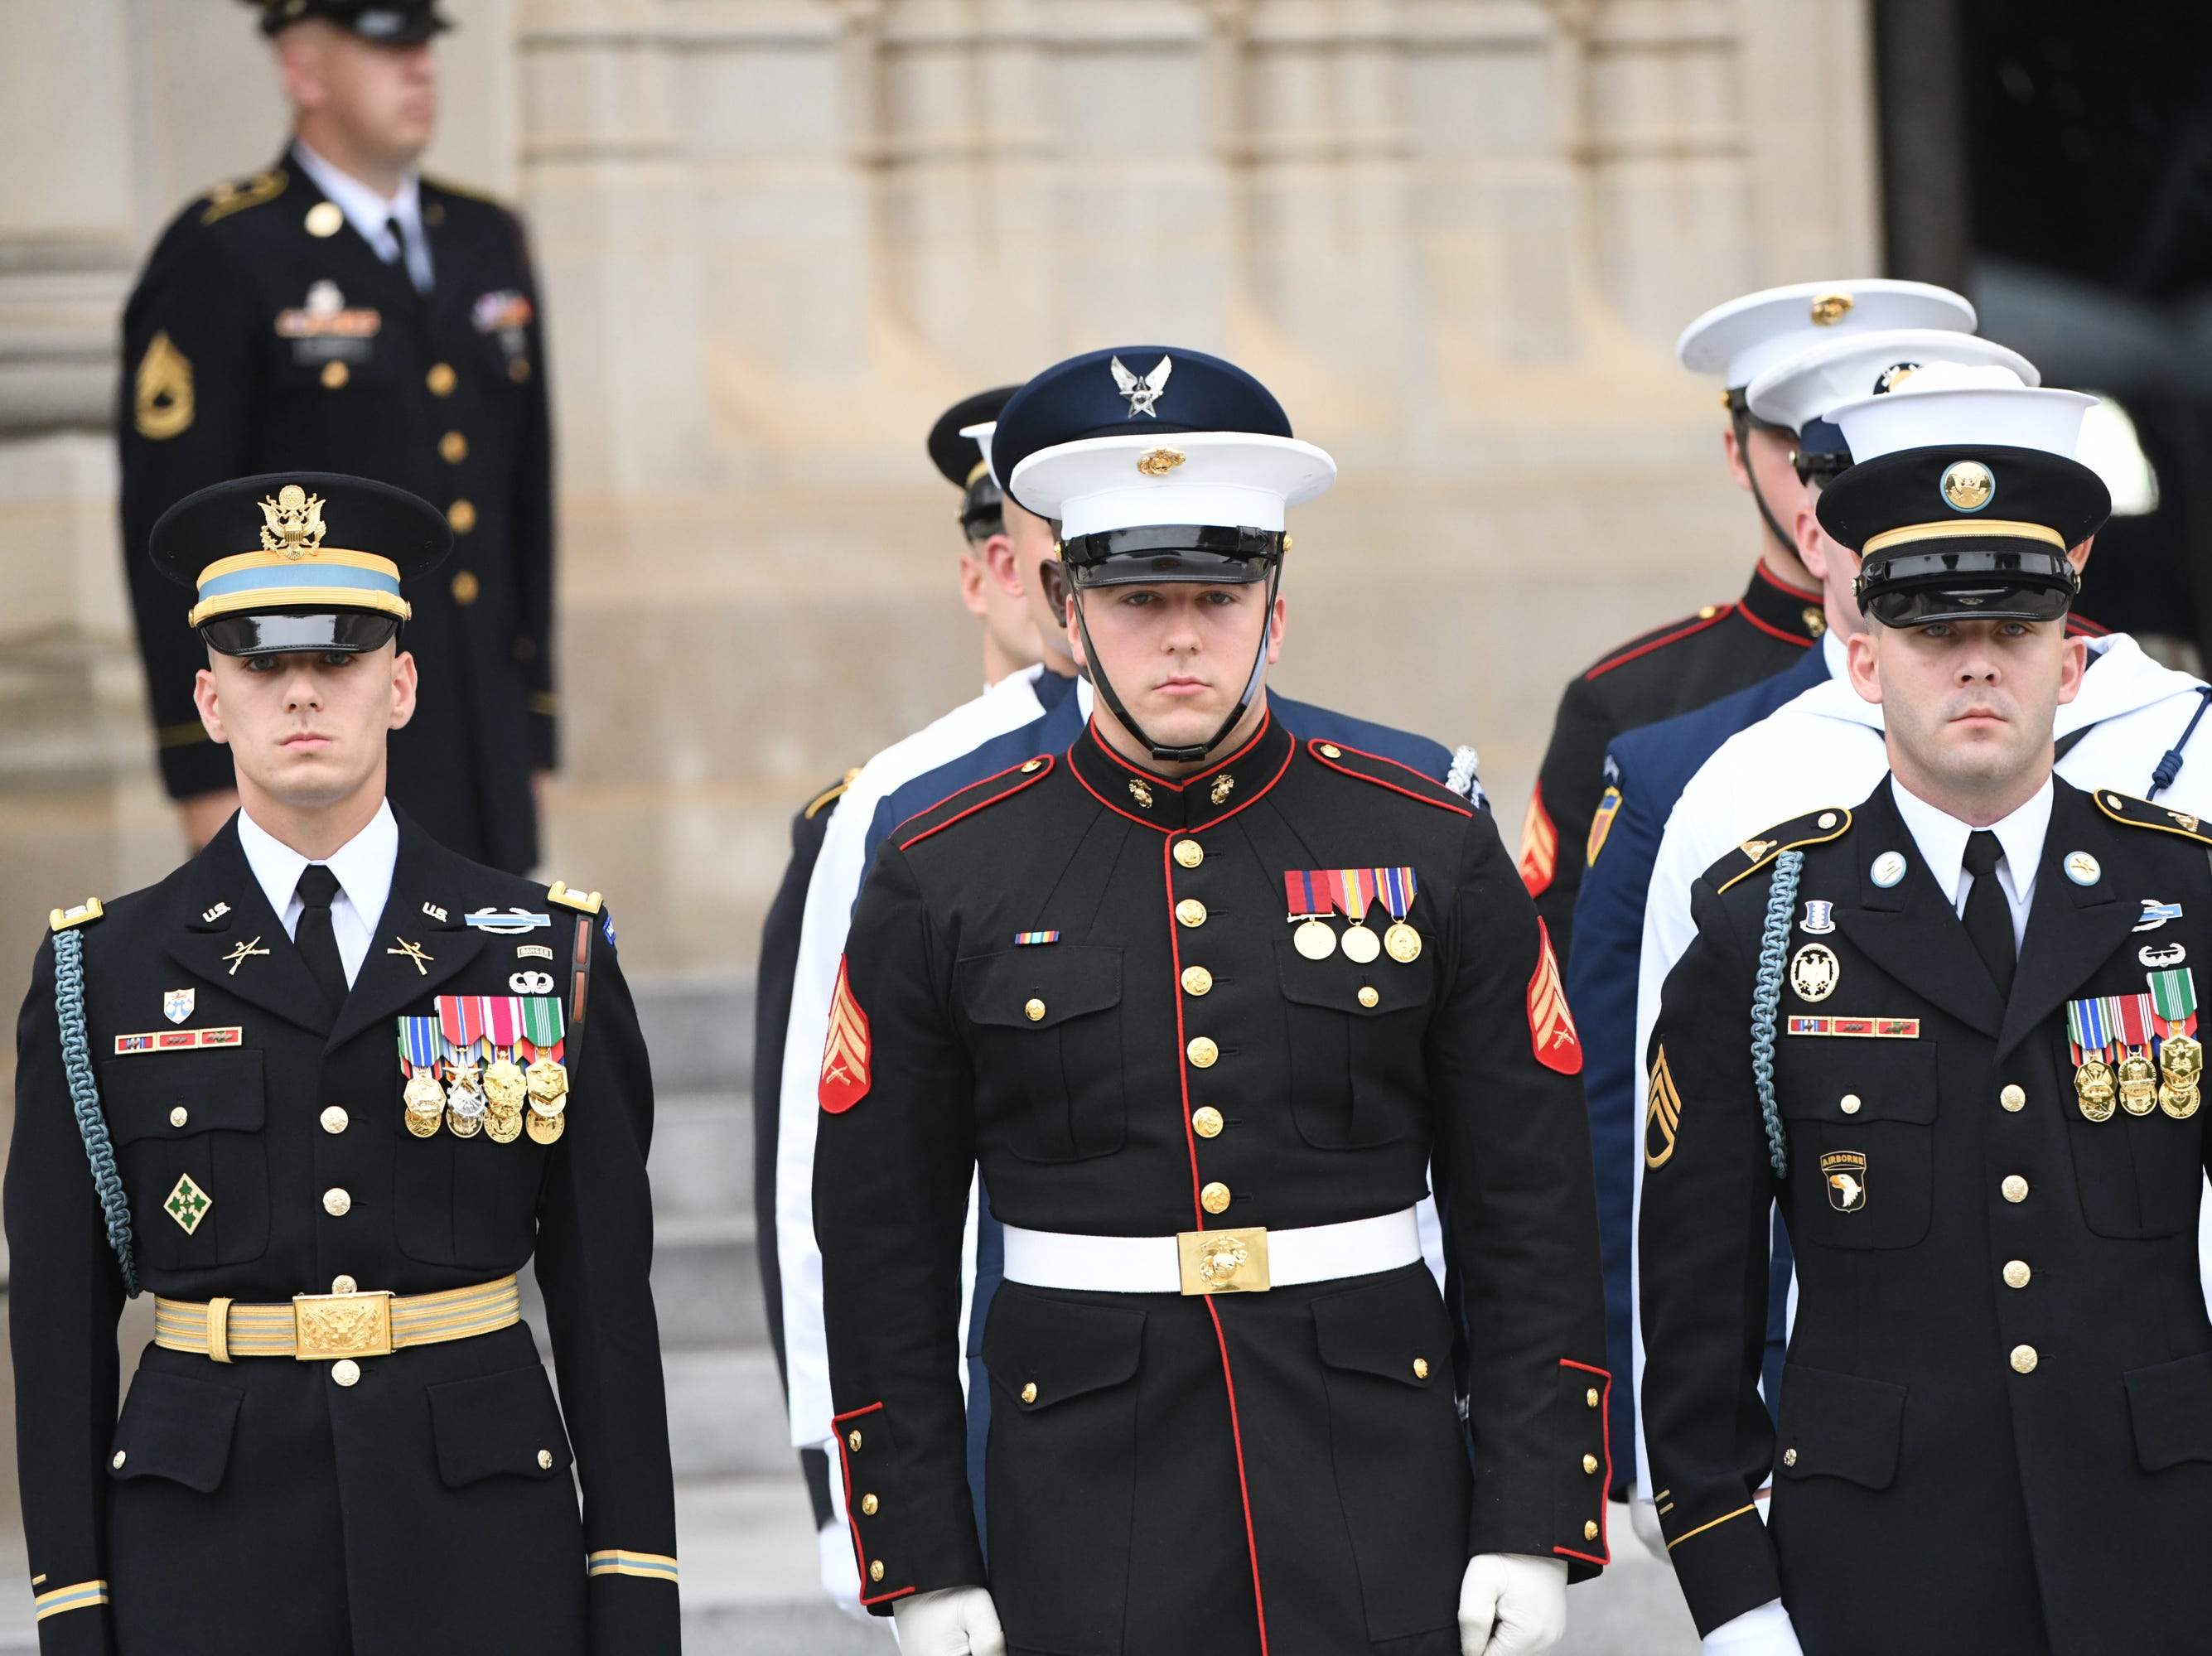 9/1/18 9:26:33 AM -- Washington, DC, U.S.A  -- Members of a military honor guard team await the arrival of John McCain's casket at the National Cathedral in Washington for a memorial service on Sept. 1, 2018. Sen. McCain died on Aug. 25. --    Photo by Jasper Colt, USA TODAY Staff